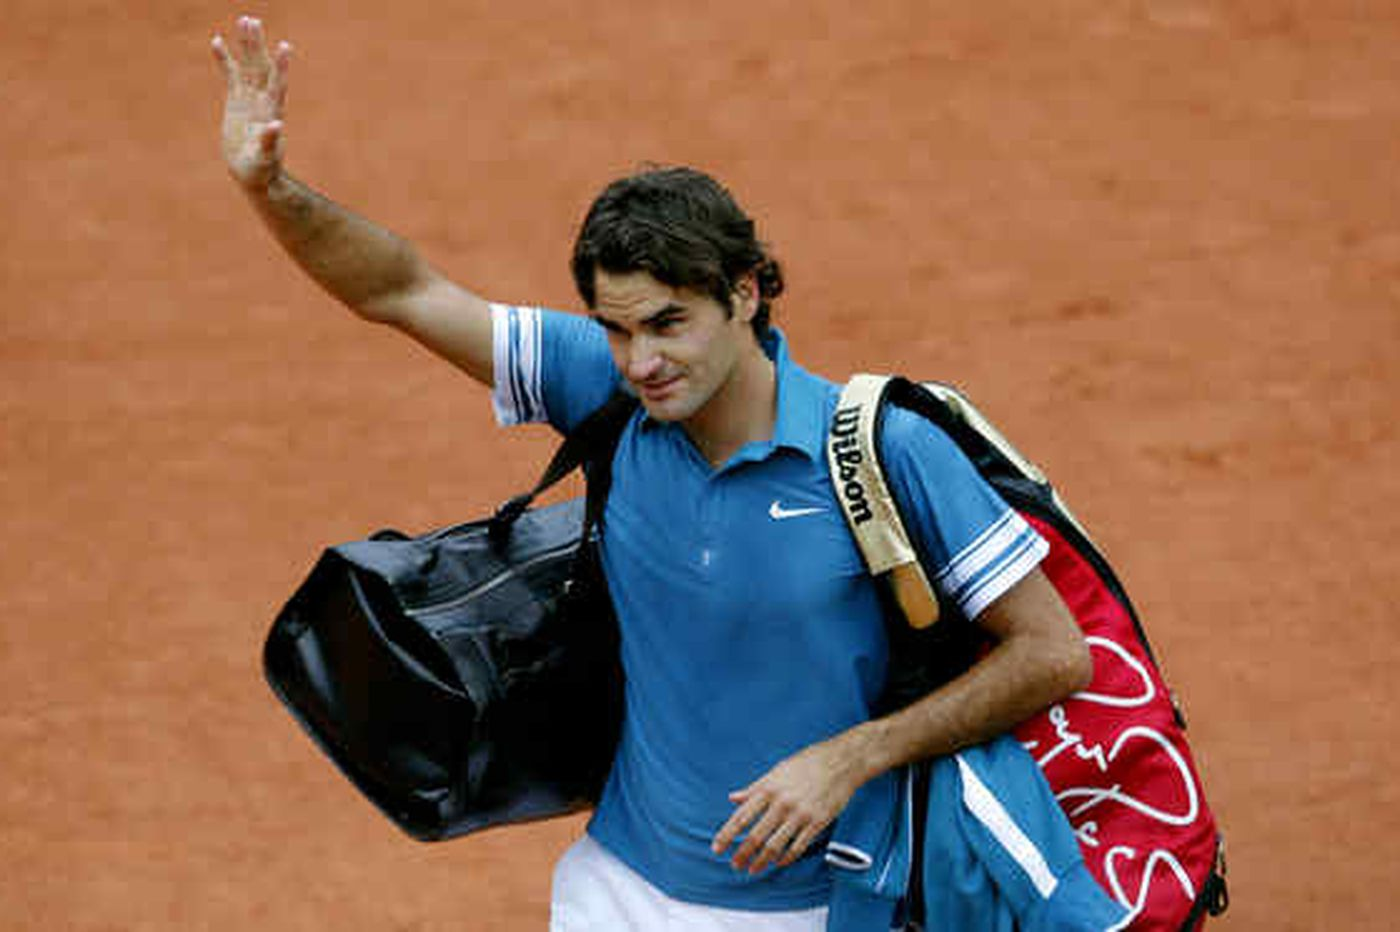 Quelle surprise! Federer out of French Open